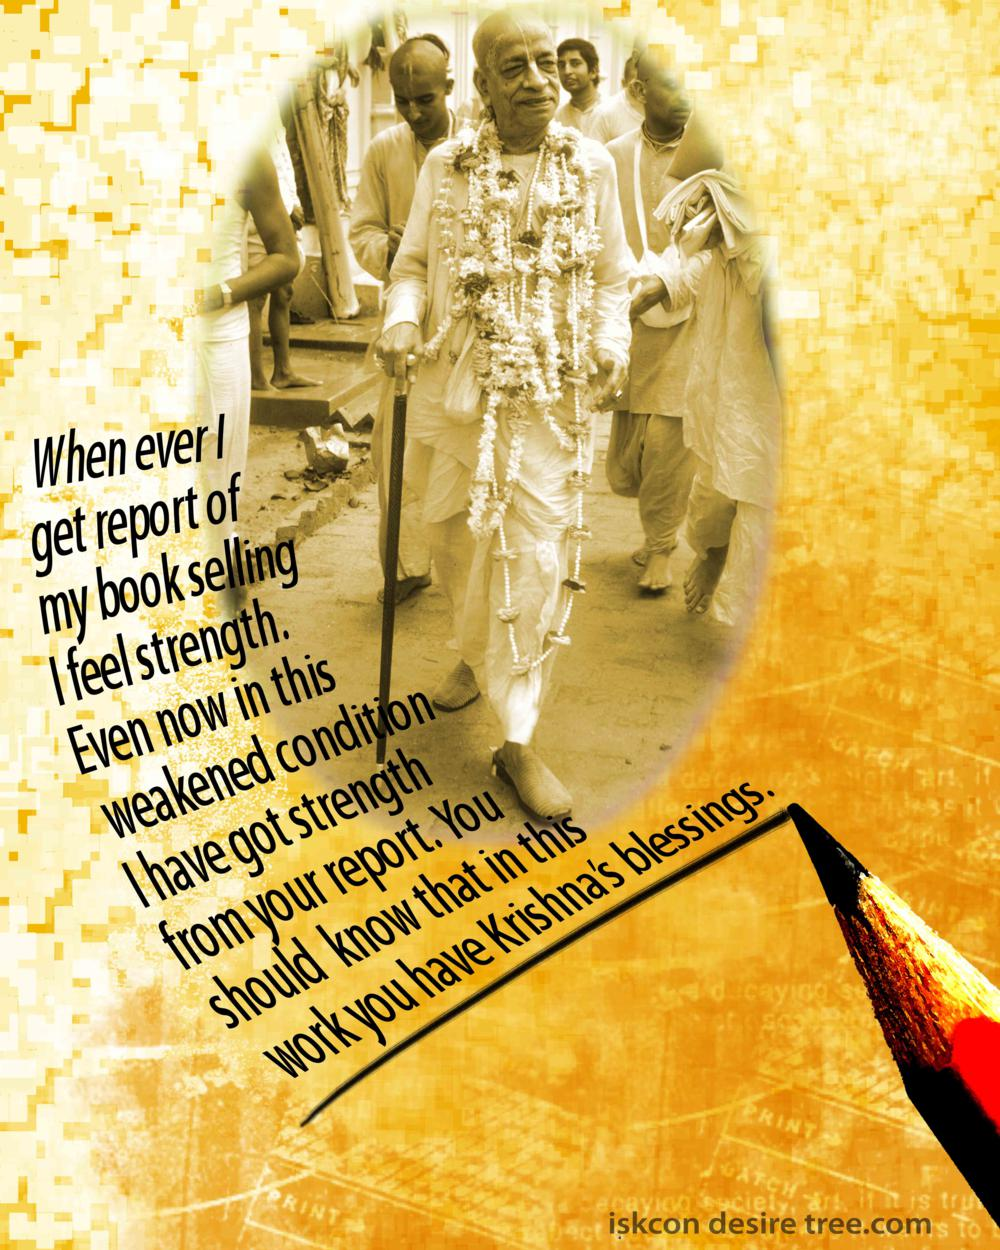 Quotes by Srila Prabhupada on Report of Book Selling